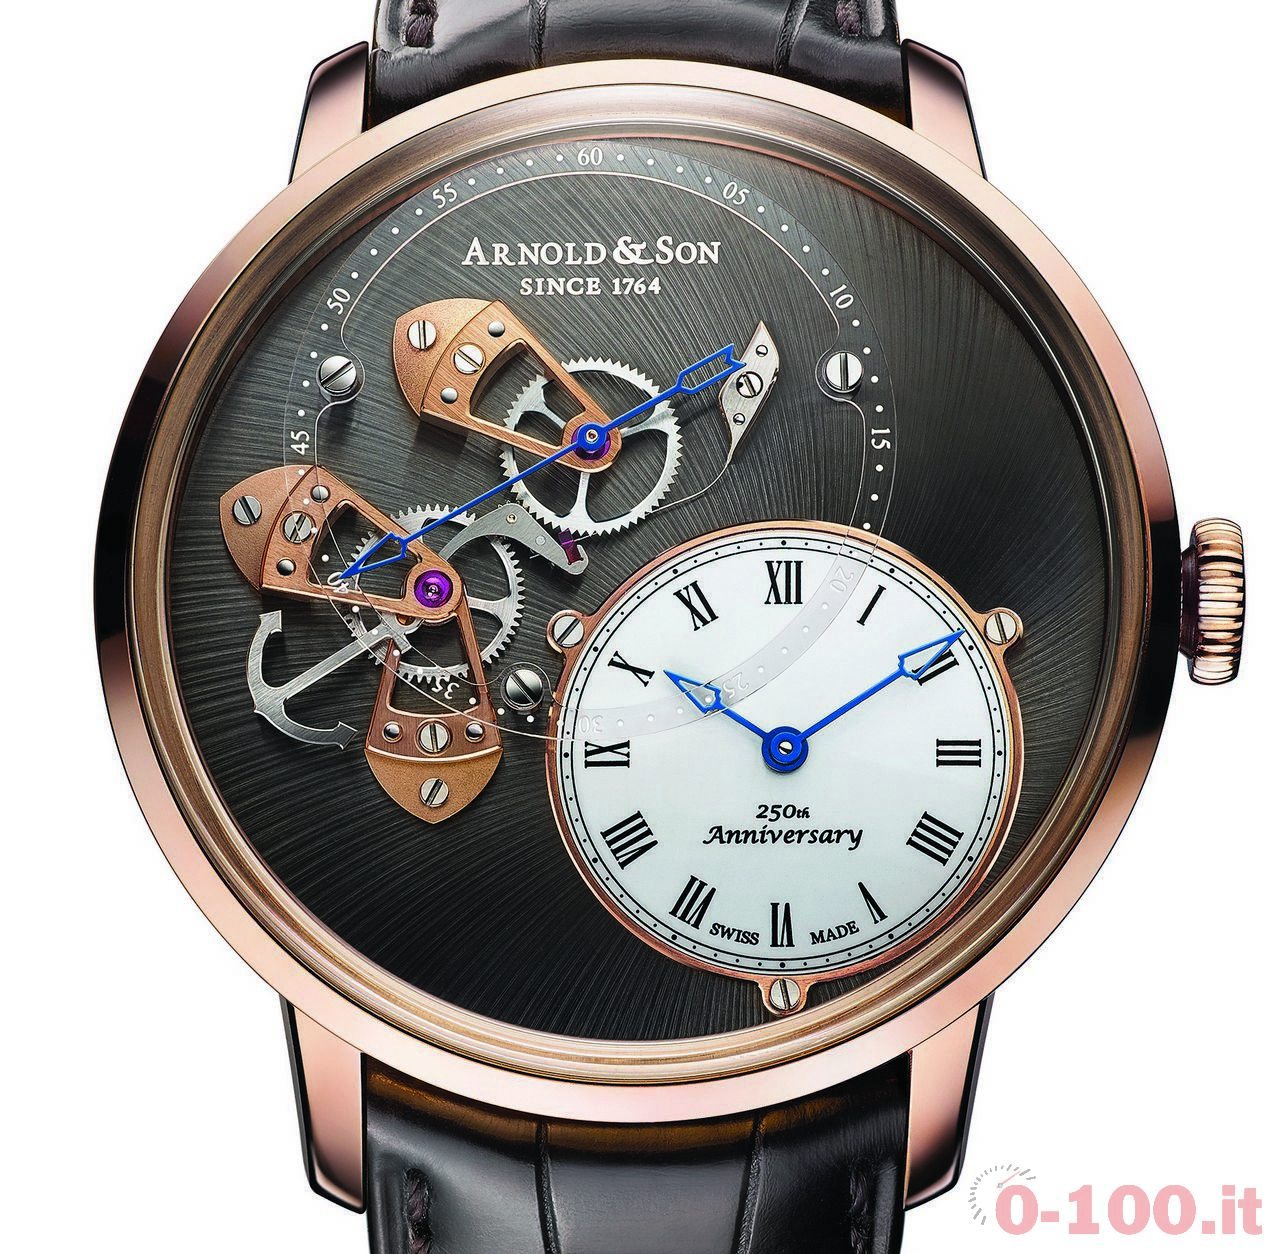 anteprima-baselworld-2015-arnold-son-instrument-collection-dstb-limited-edition_0-100_2